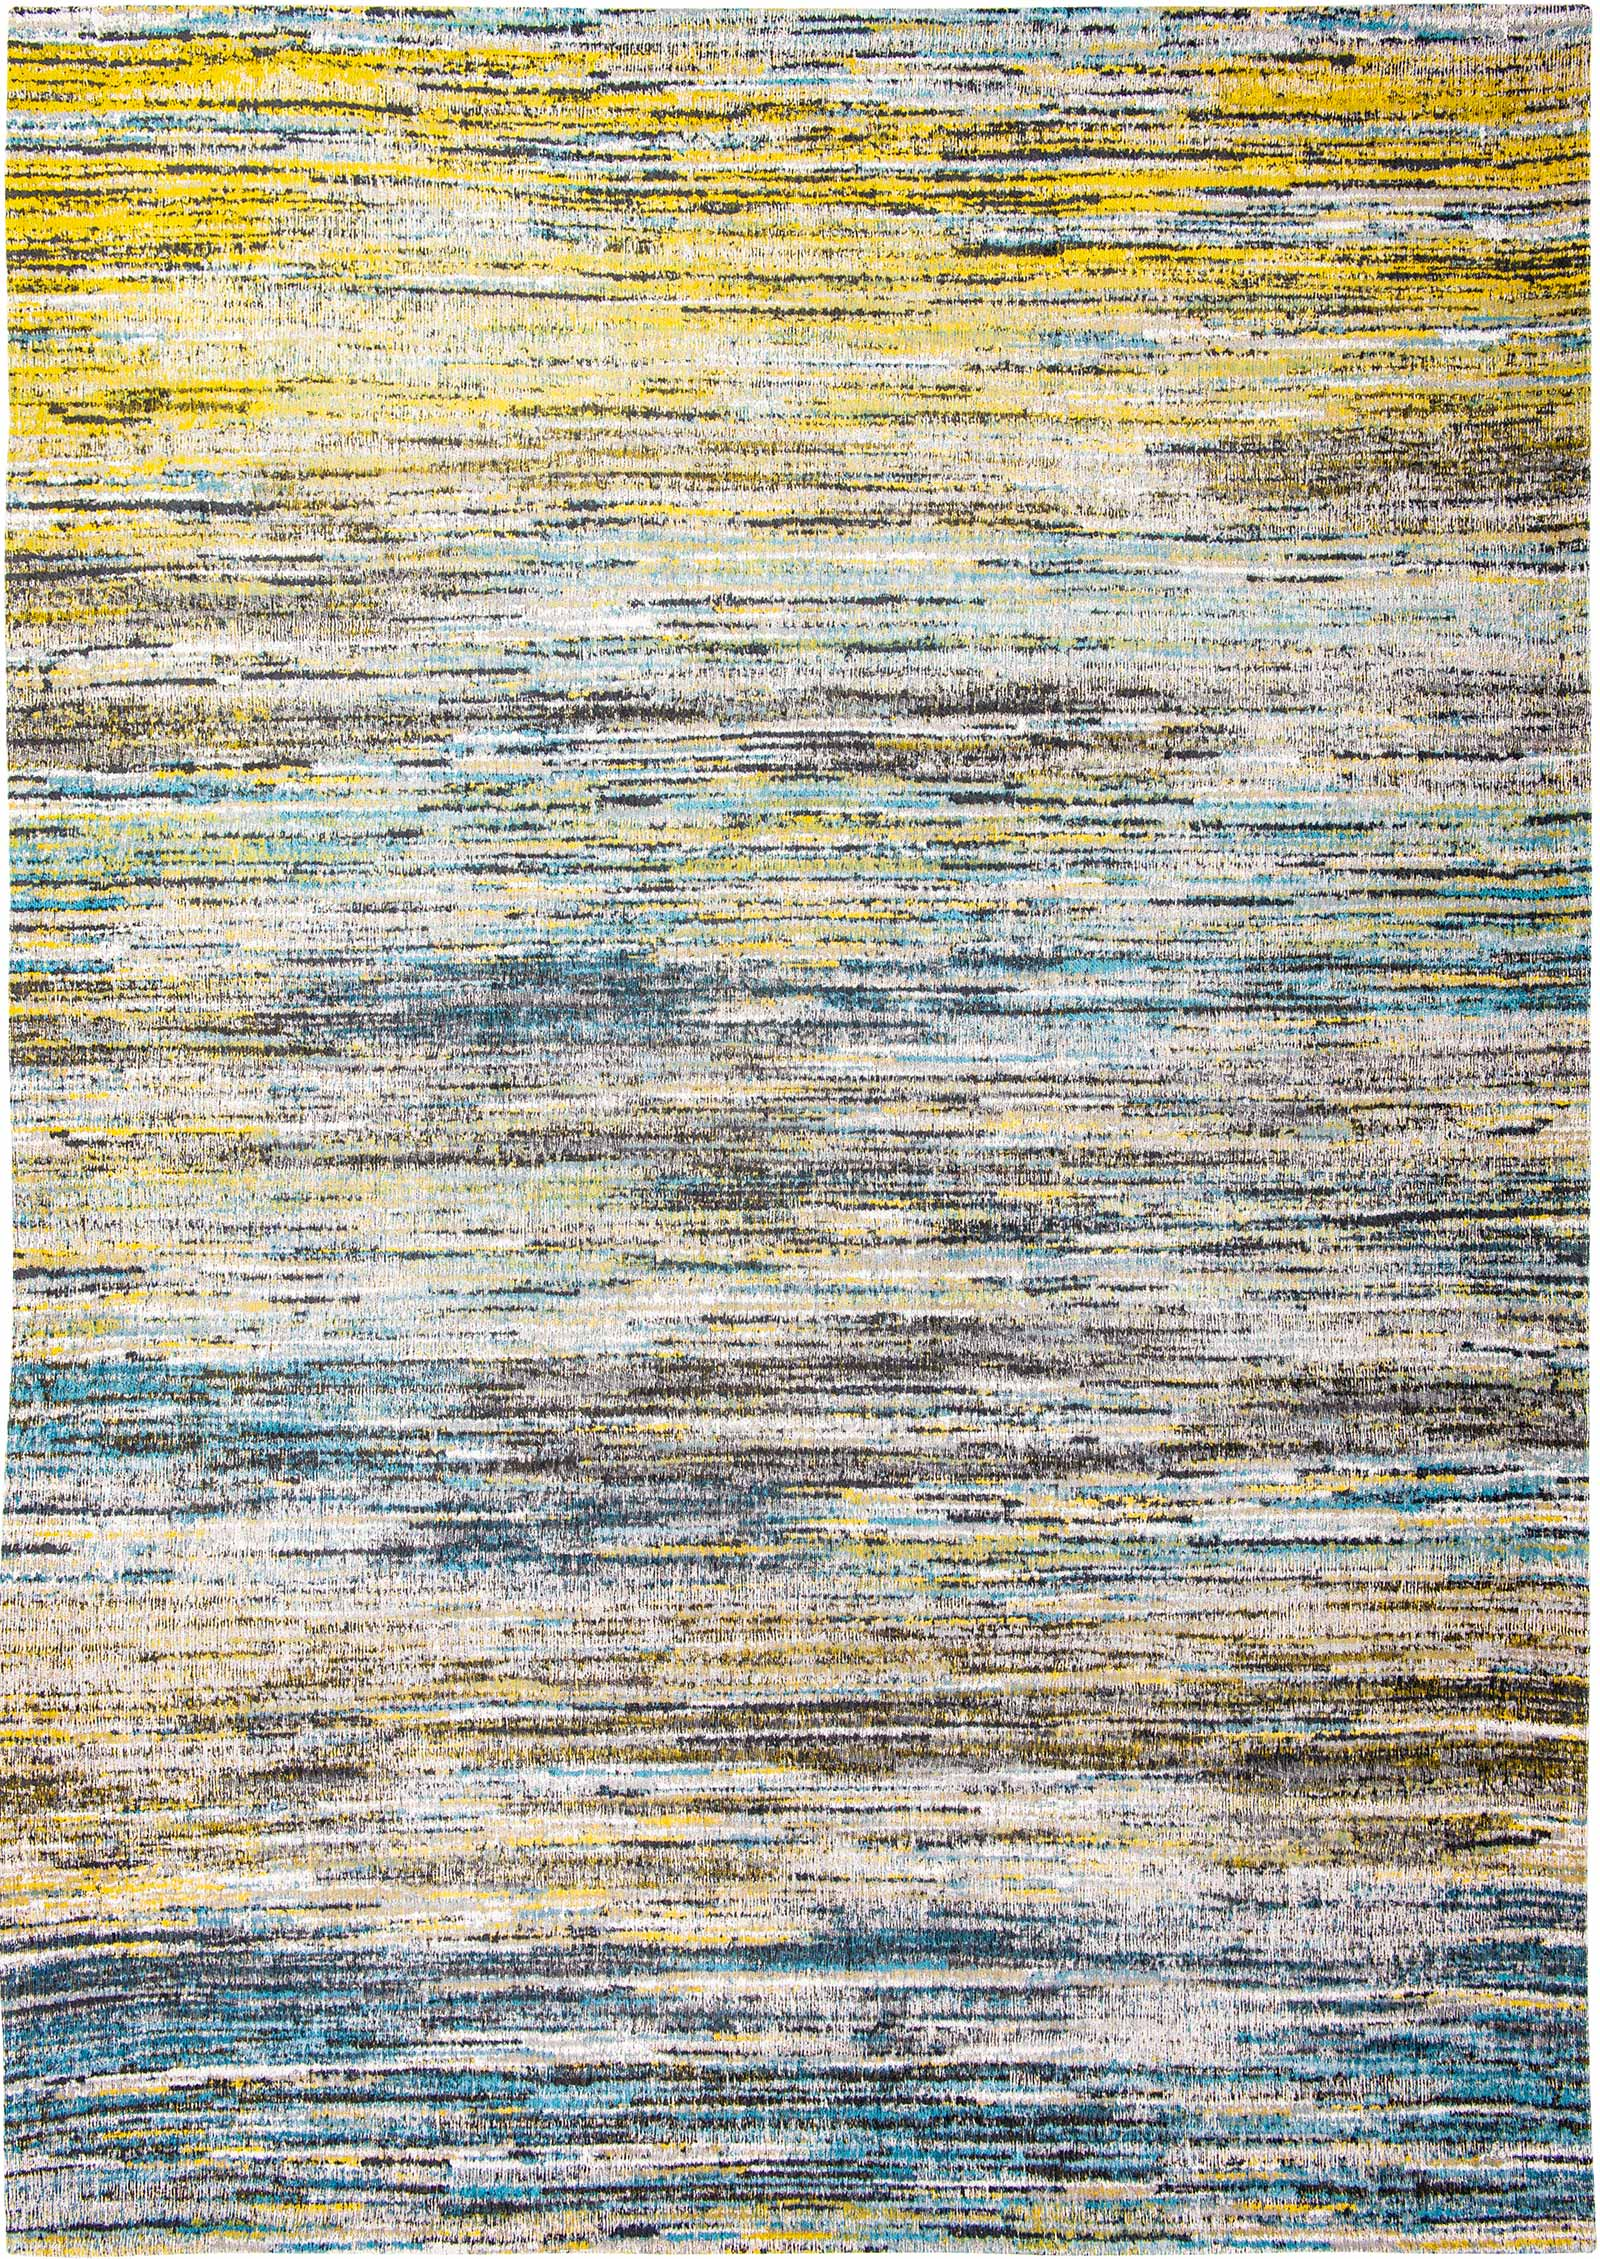 Tappeto Indiano Giallo Tappeto Louis De Poortere Sari Blue Yellow Mix 8873 Sari Design